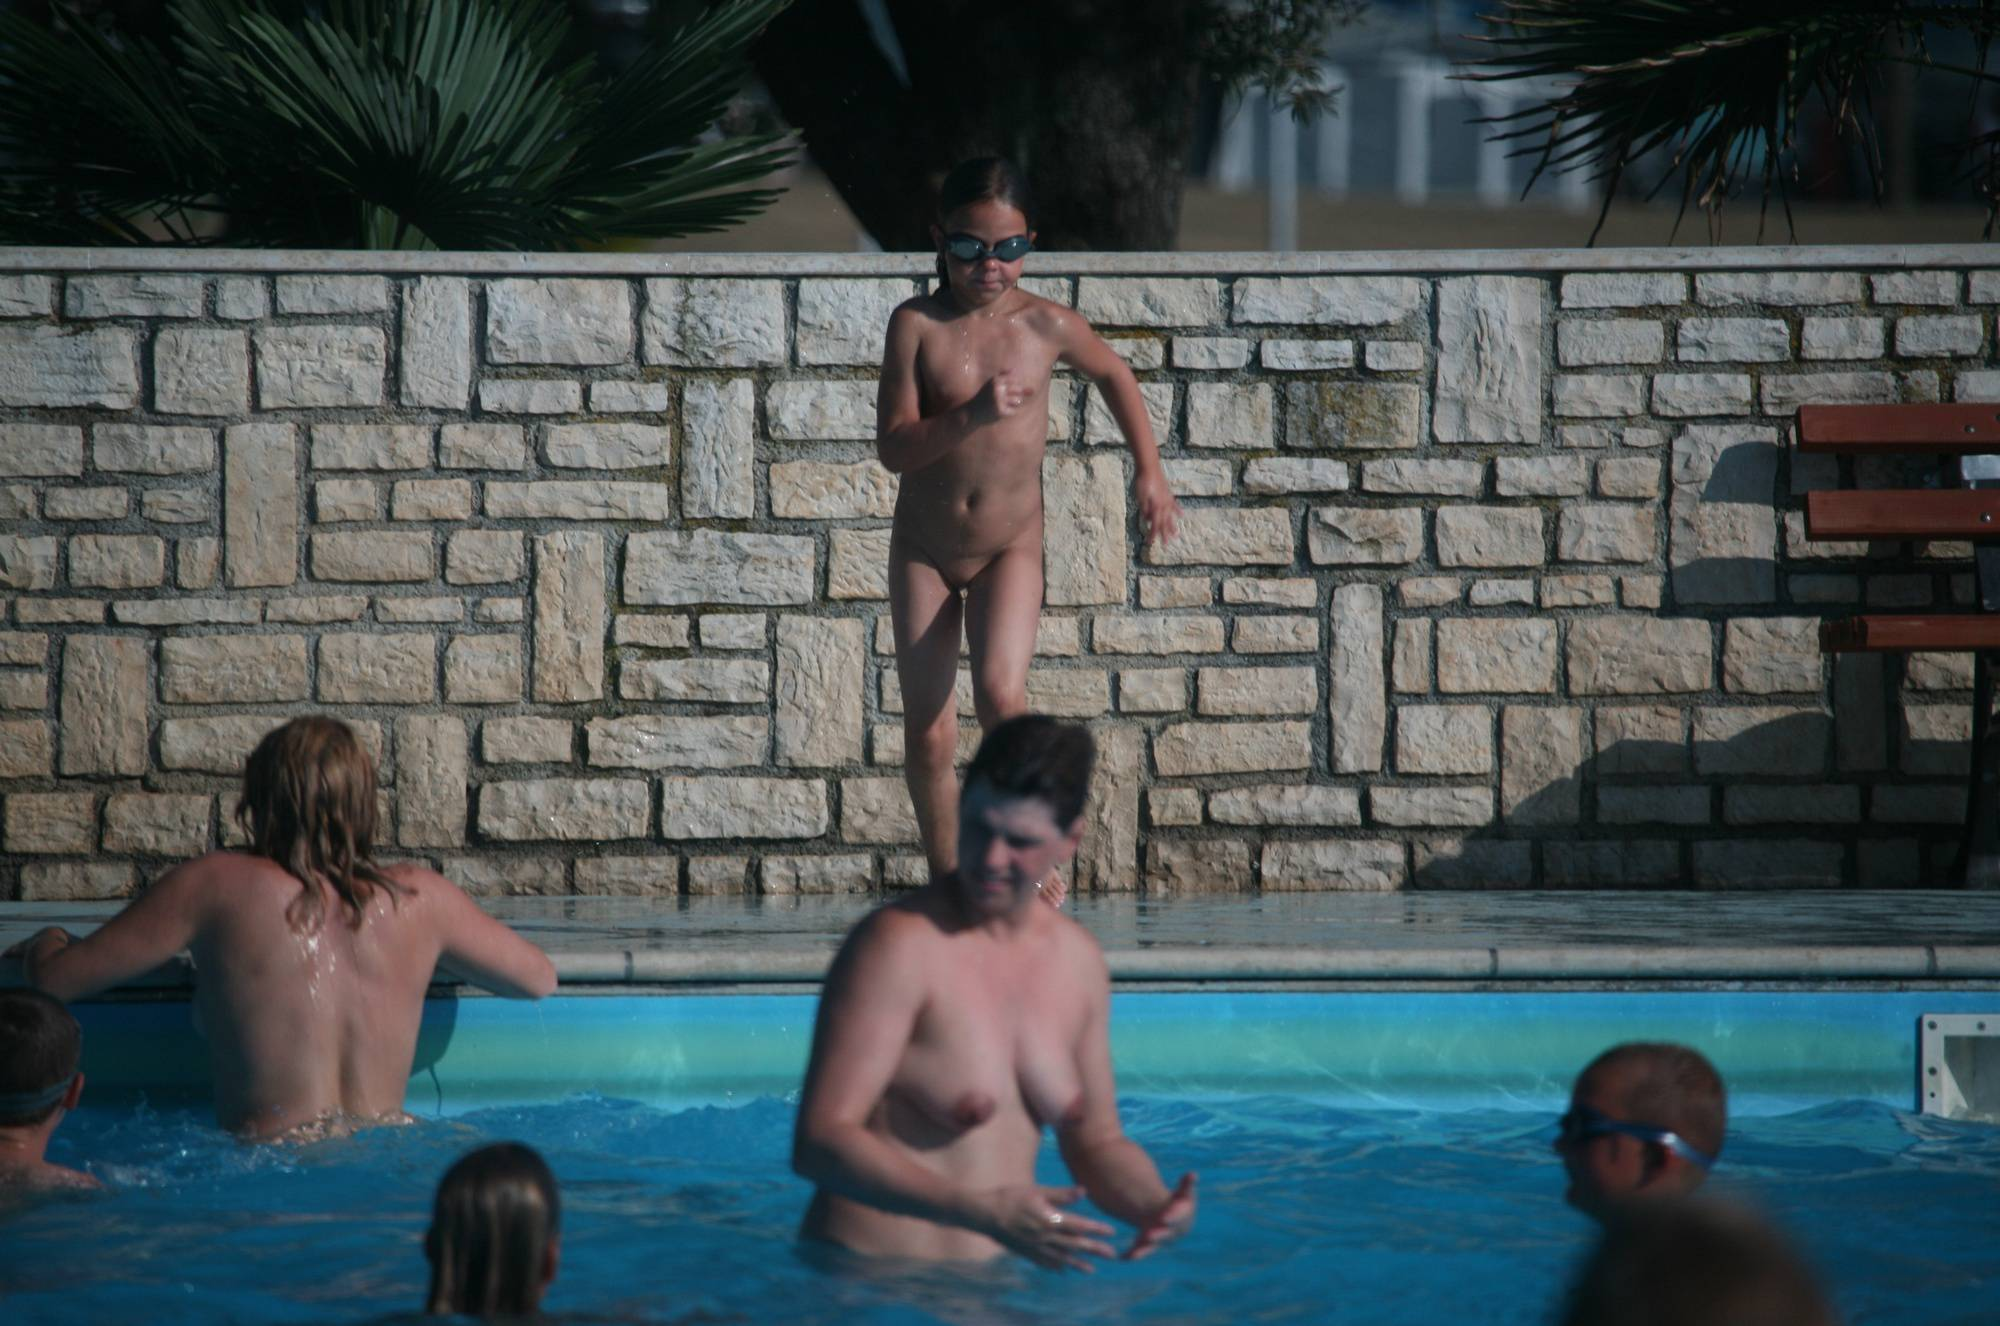 Pure Nudism Pics Nudist Pool Jumpers Two - 3